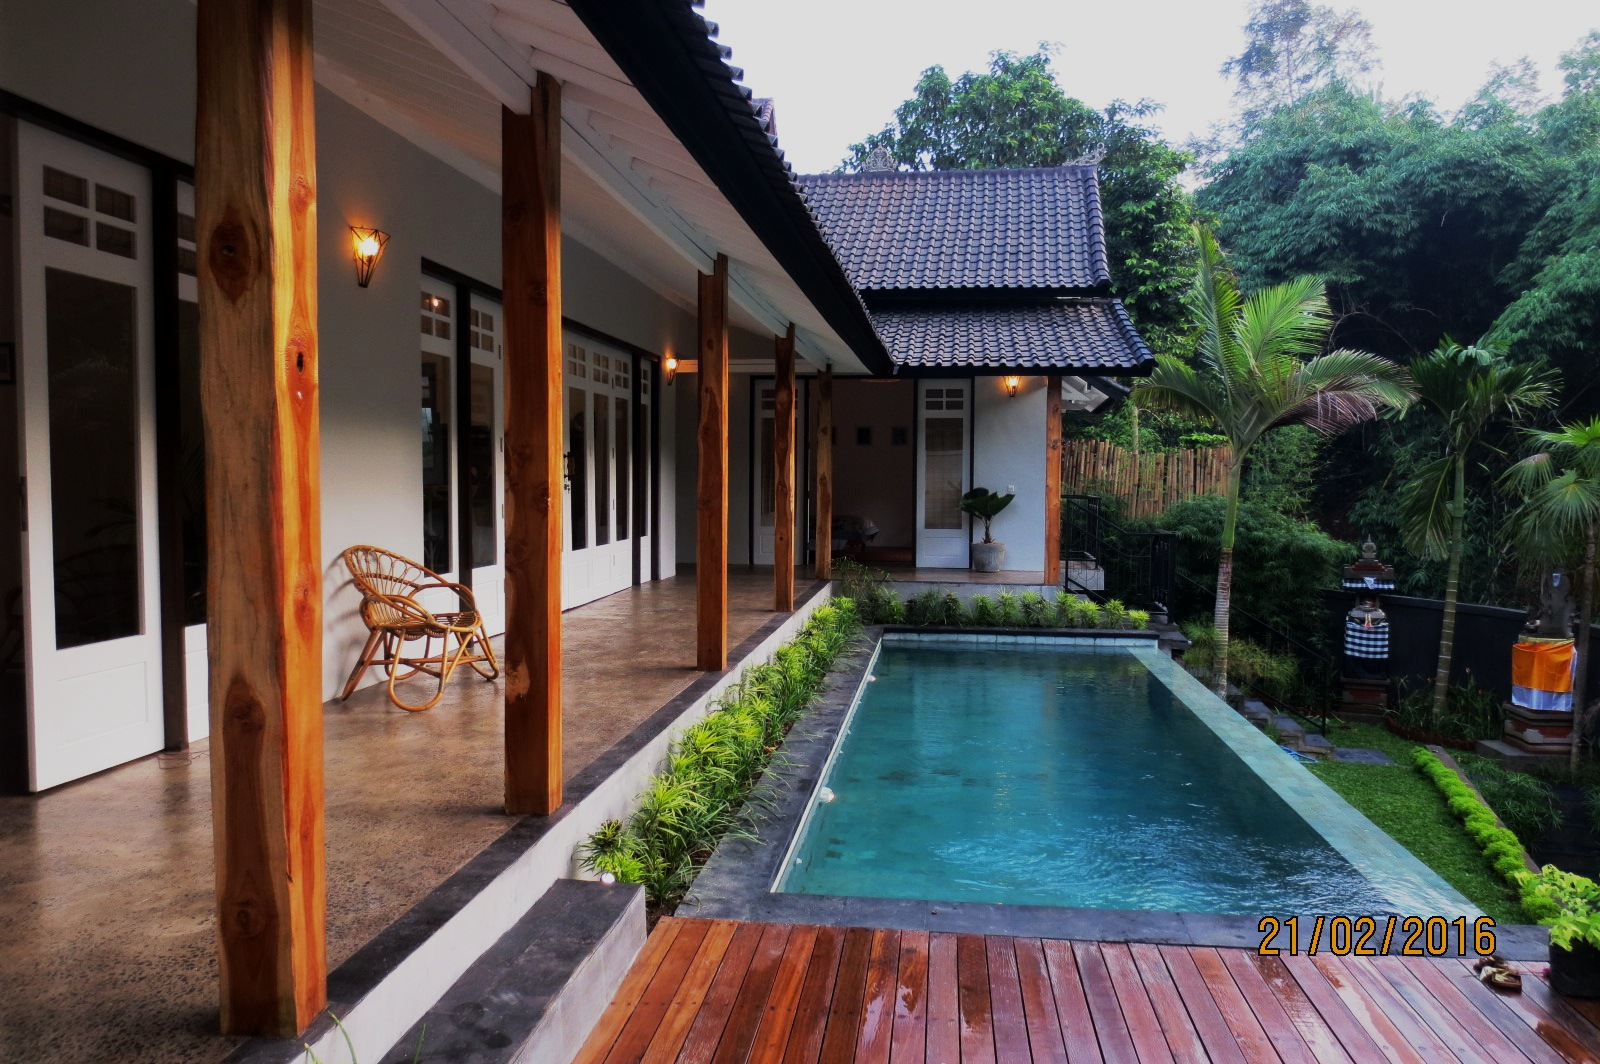 Brand New 2 Bedroom Villa for Sale on 400 sq m of Leasehold Land 5 Minutes From Ubud Center